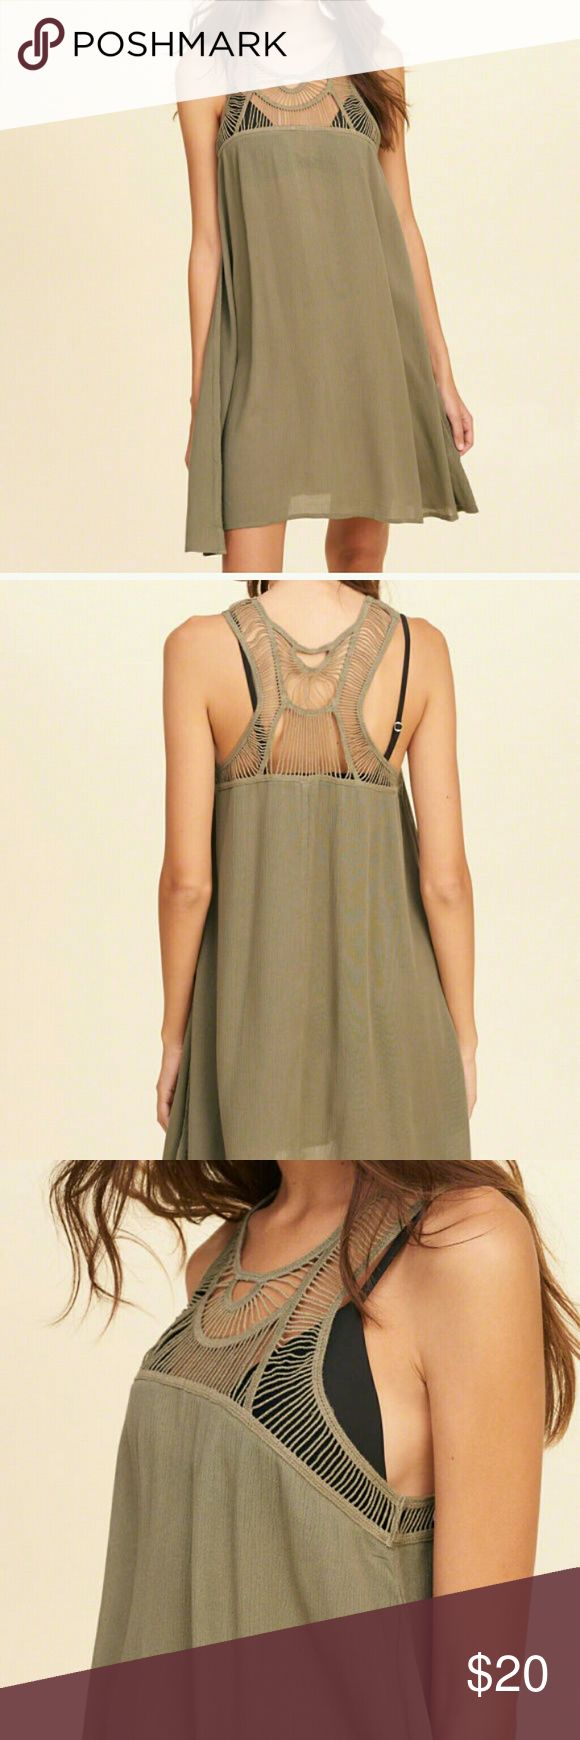 Hollister Swimsuit Cover Up Dress, Size L New with tag Smoke free pet free  Ships same business day Hollister Swim Coverups